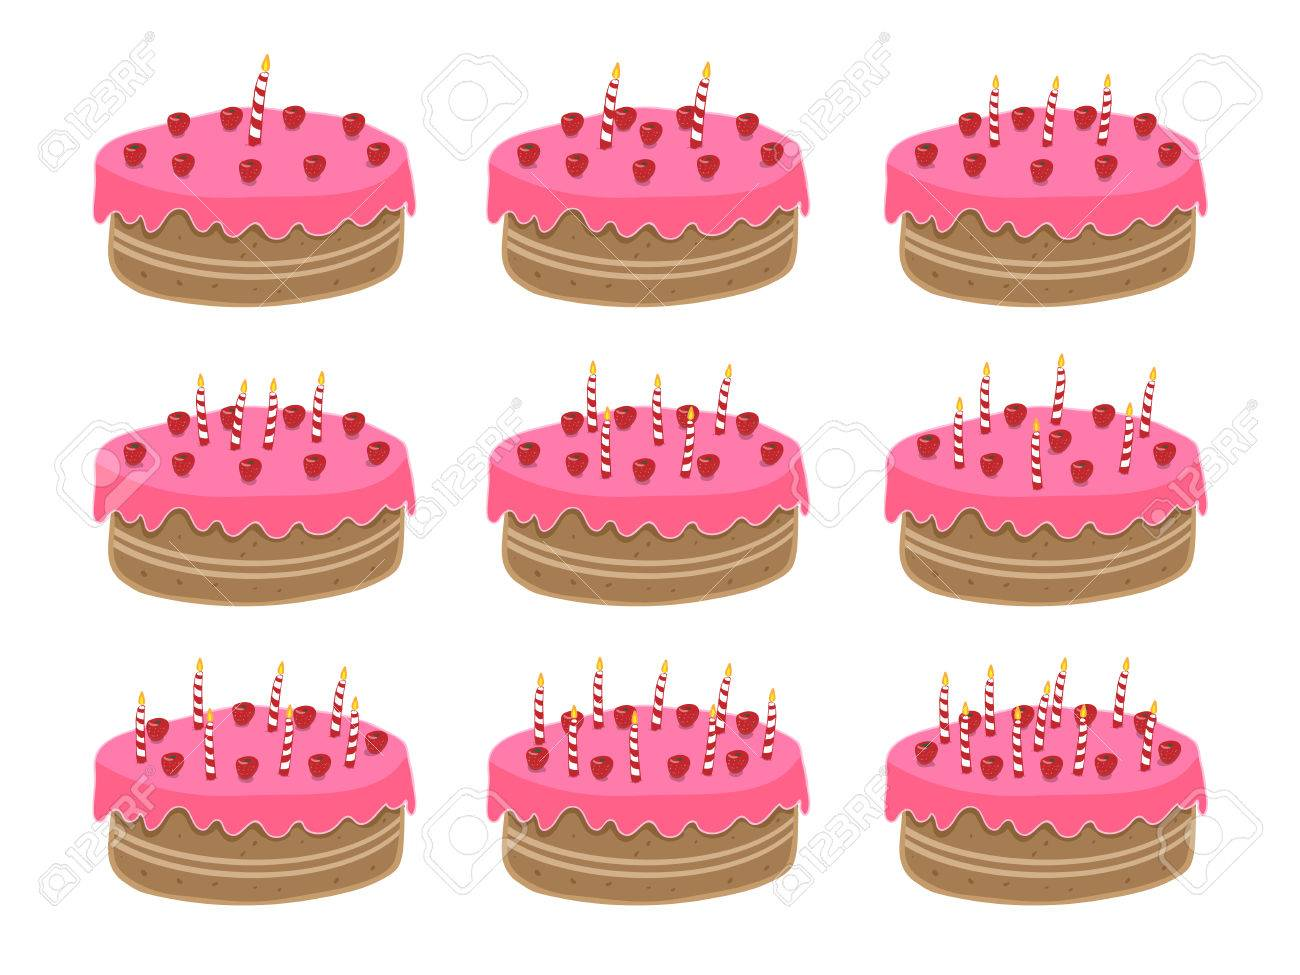 Birthday cake. One year old to nine years old, but very easy to add more candles to reach any age! Stock Vector - 3938821